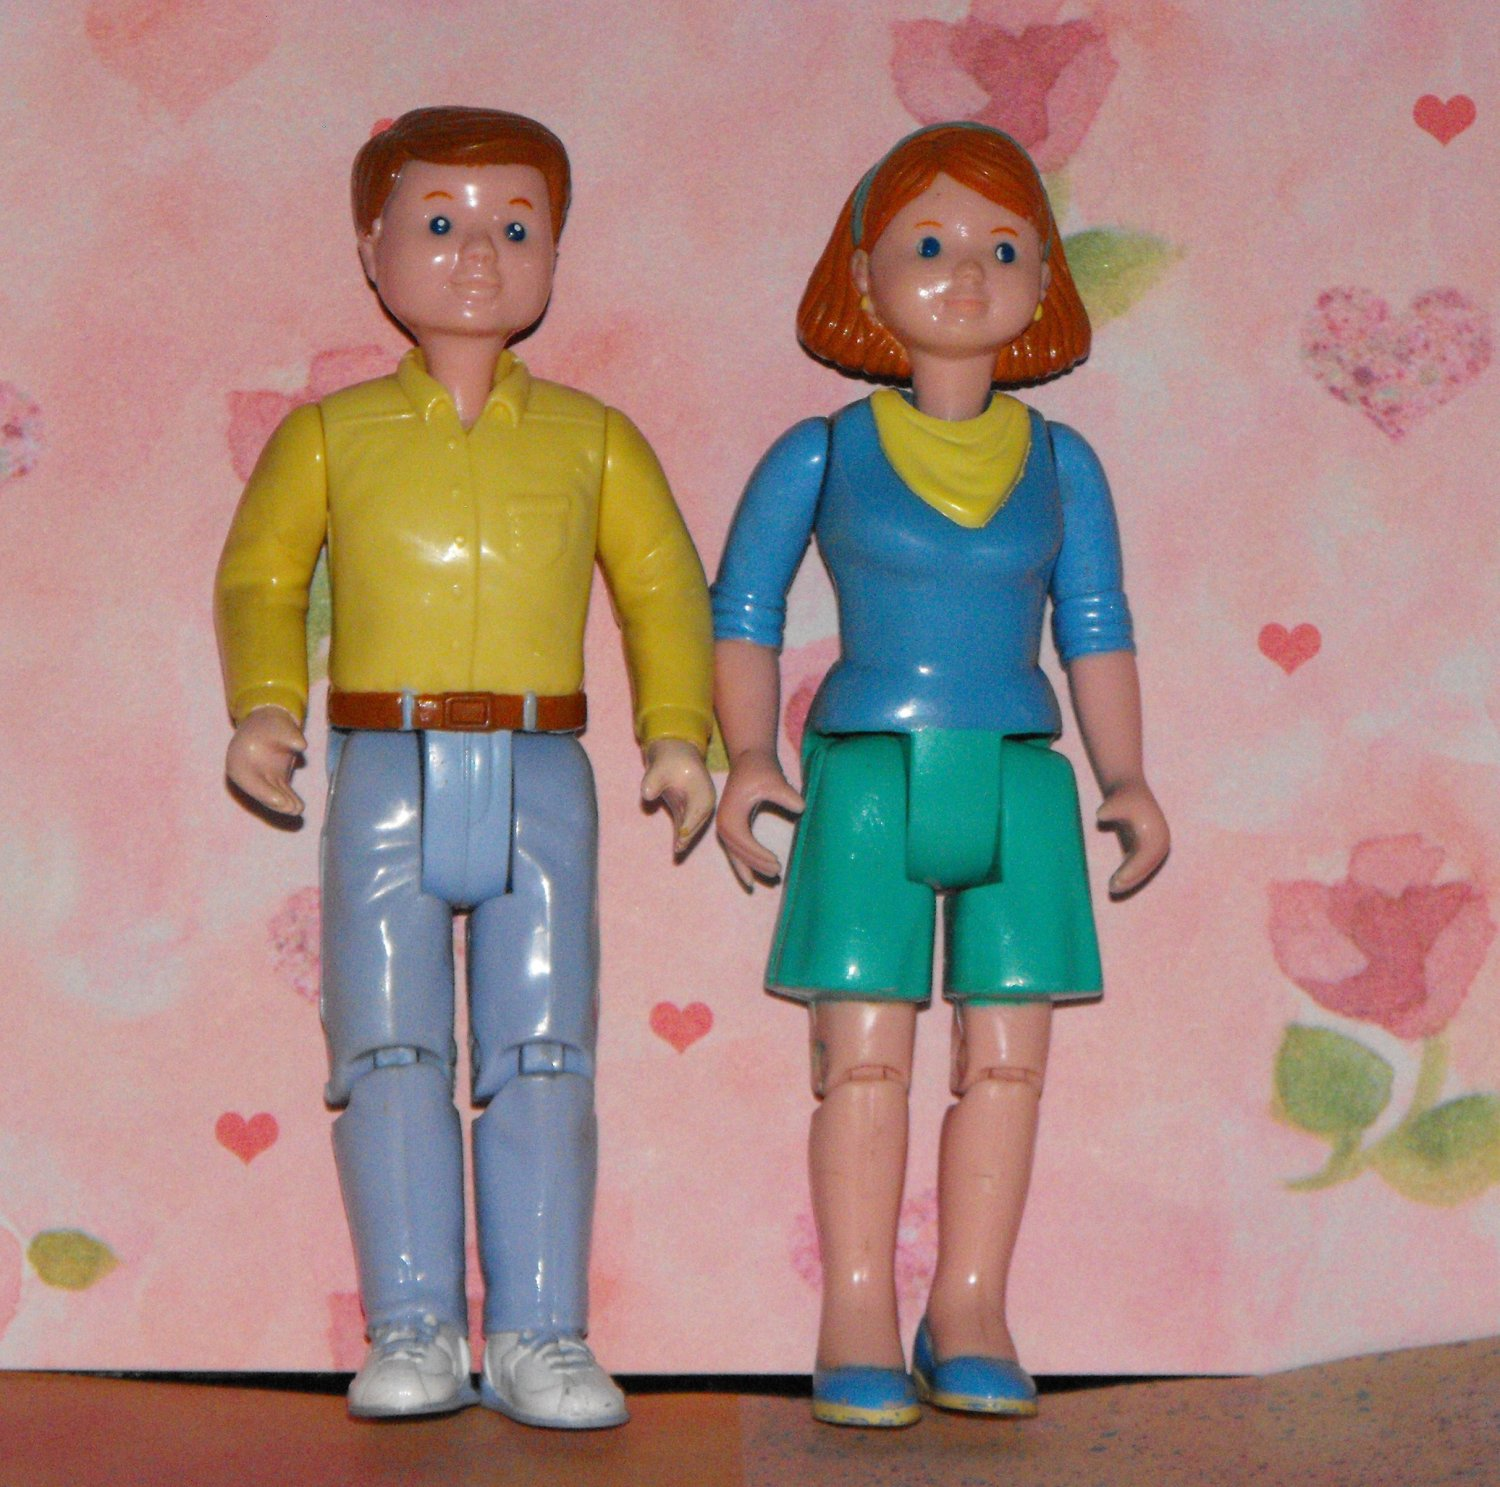 *SOLD~Awaiting Feedback~LOVING FAMILY DOLLHOUSE1993 CAMPING RV PARENT DOLLS PEOPLE